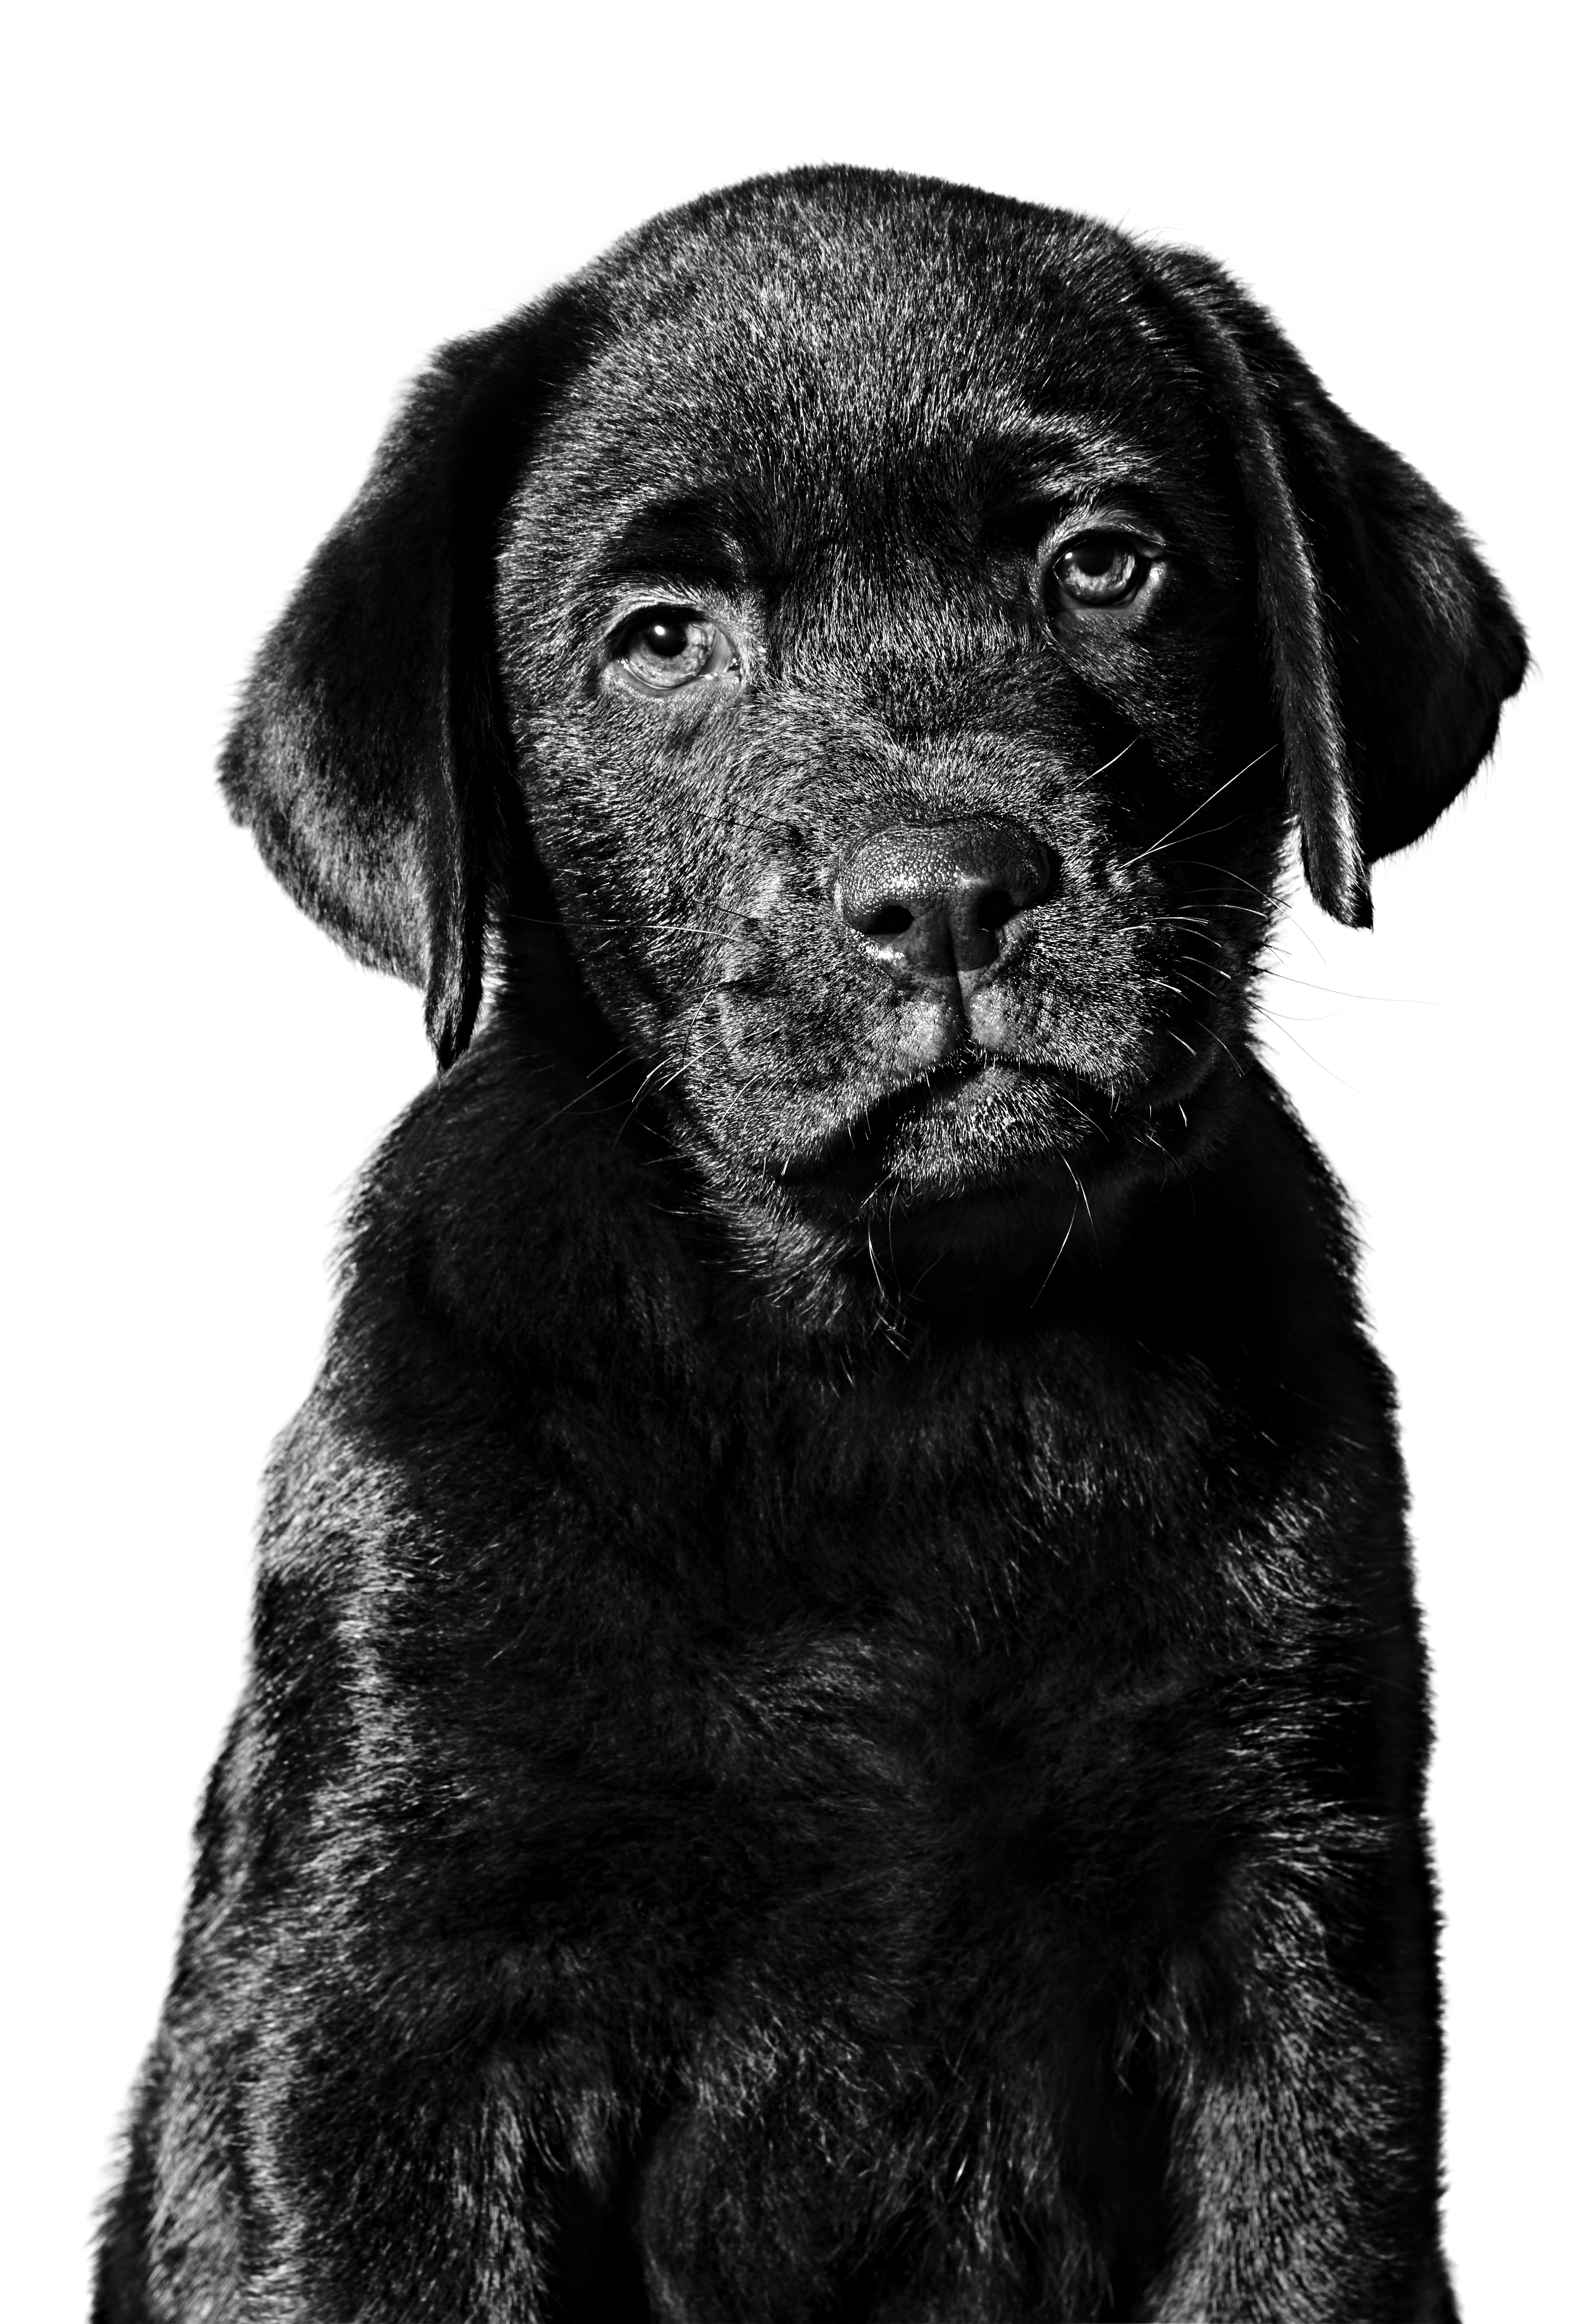 Chocolate Labrador Retriever puppy in black and white on a white background